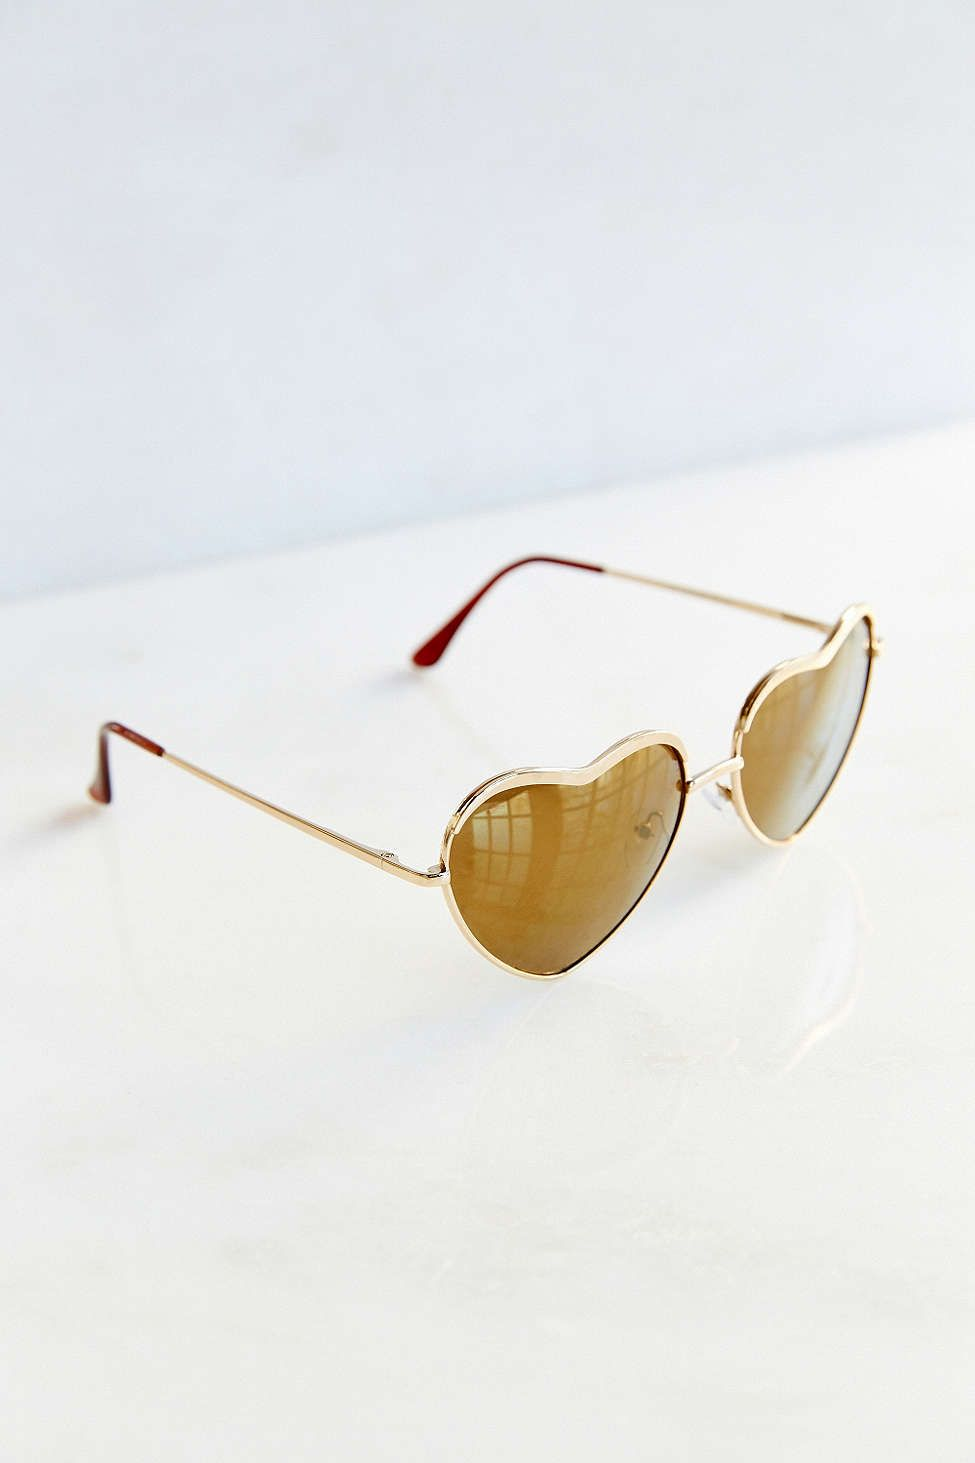 9a824f2a14 Shop Heart Of Gold Sunglasses at Urban Outfitters today. We carry all the  latest styles